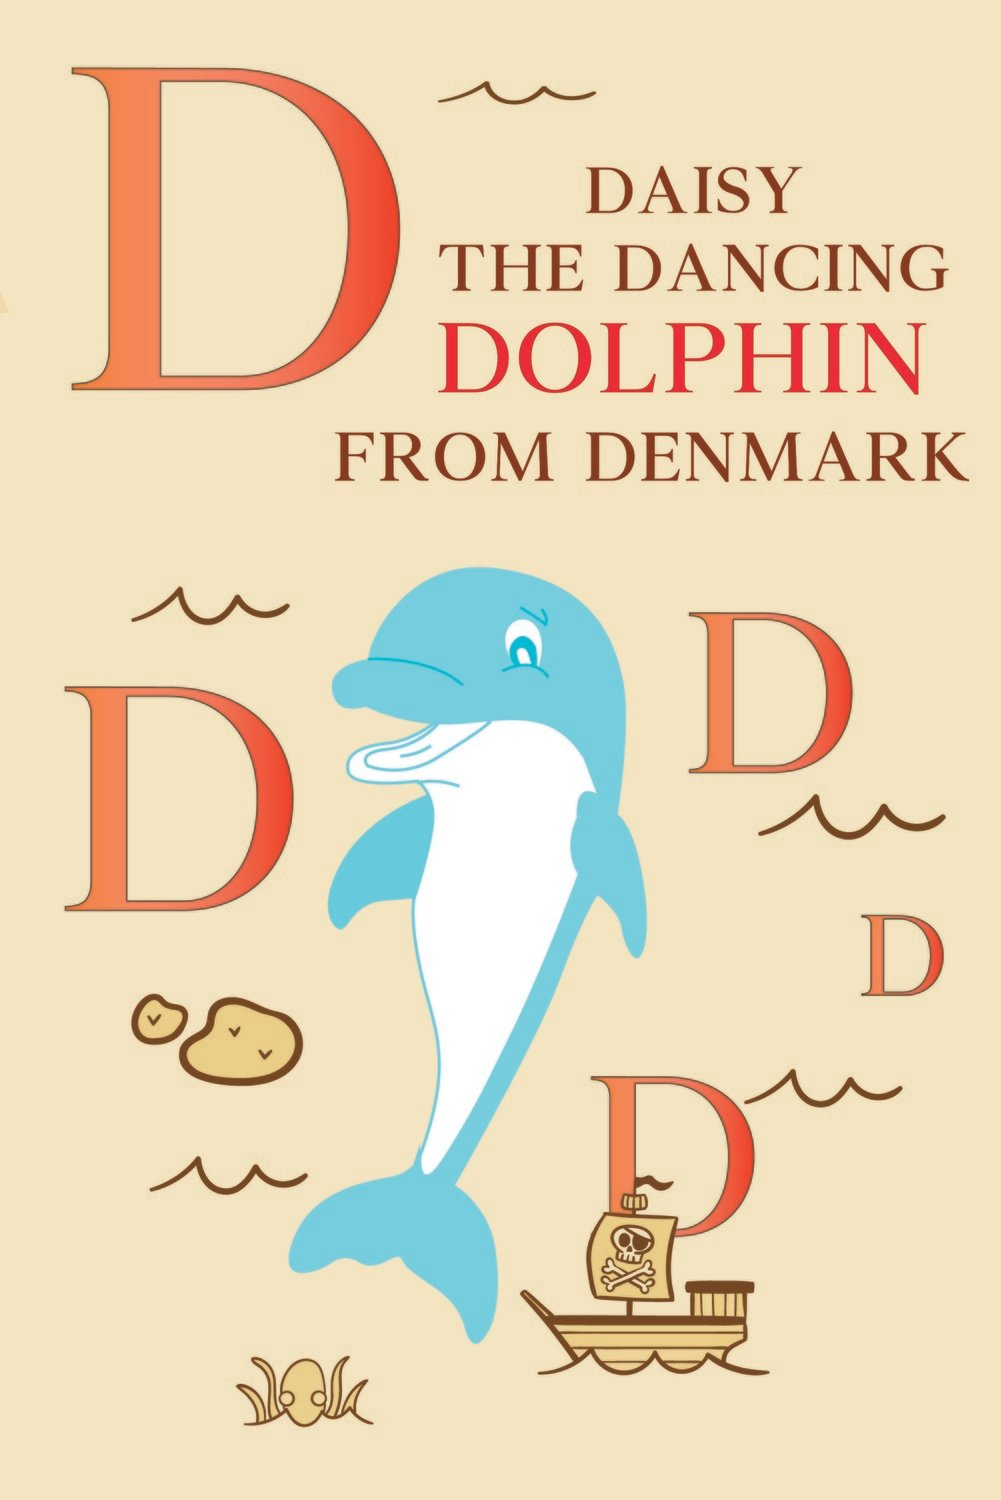 Daisy The Dancing DOLPHIN From DENMARK Poster